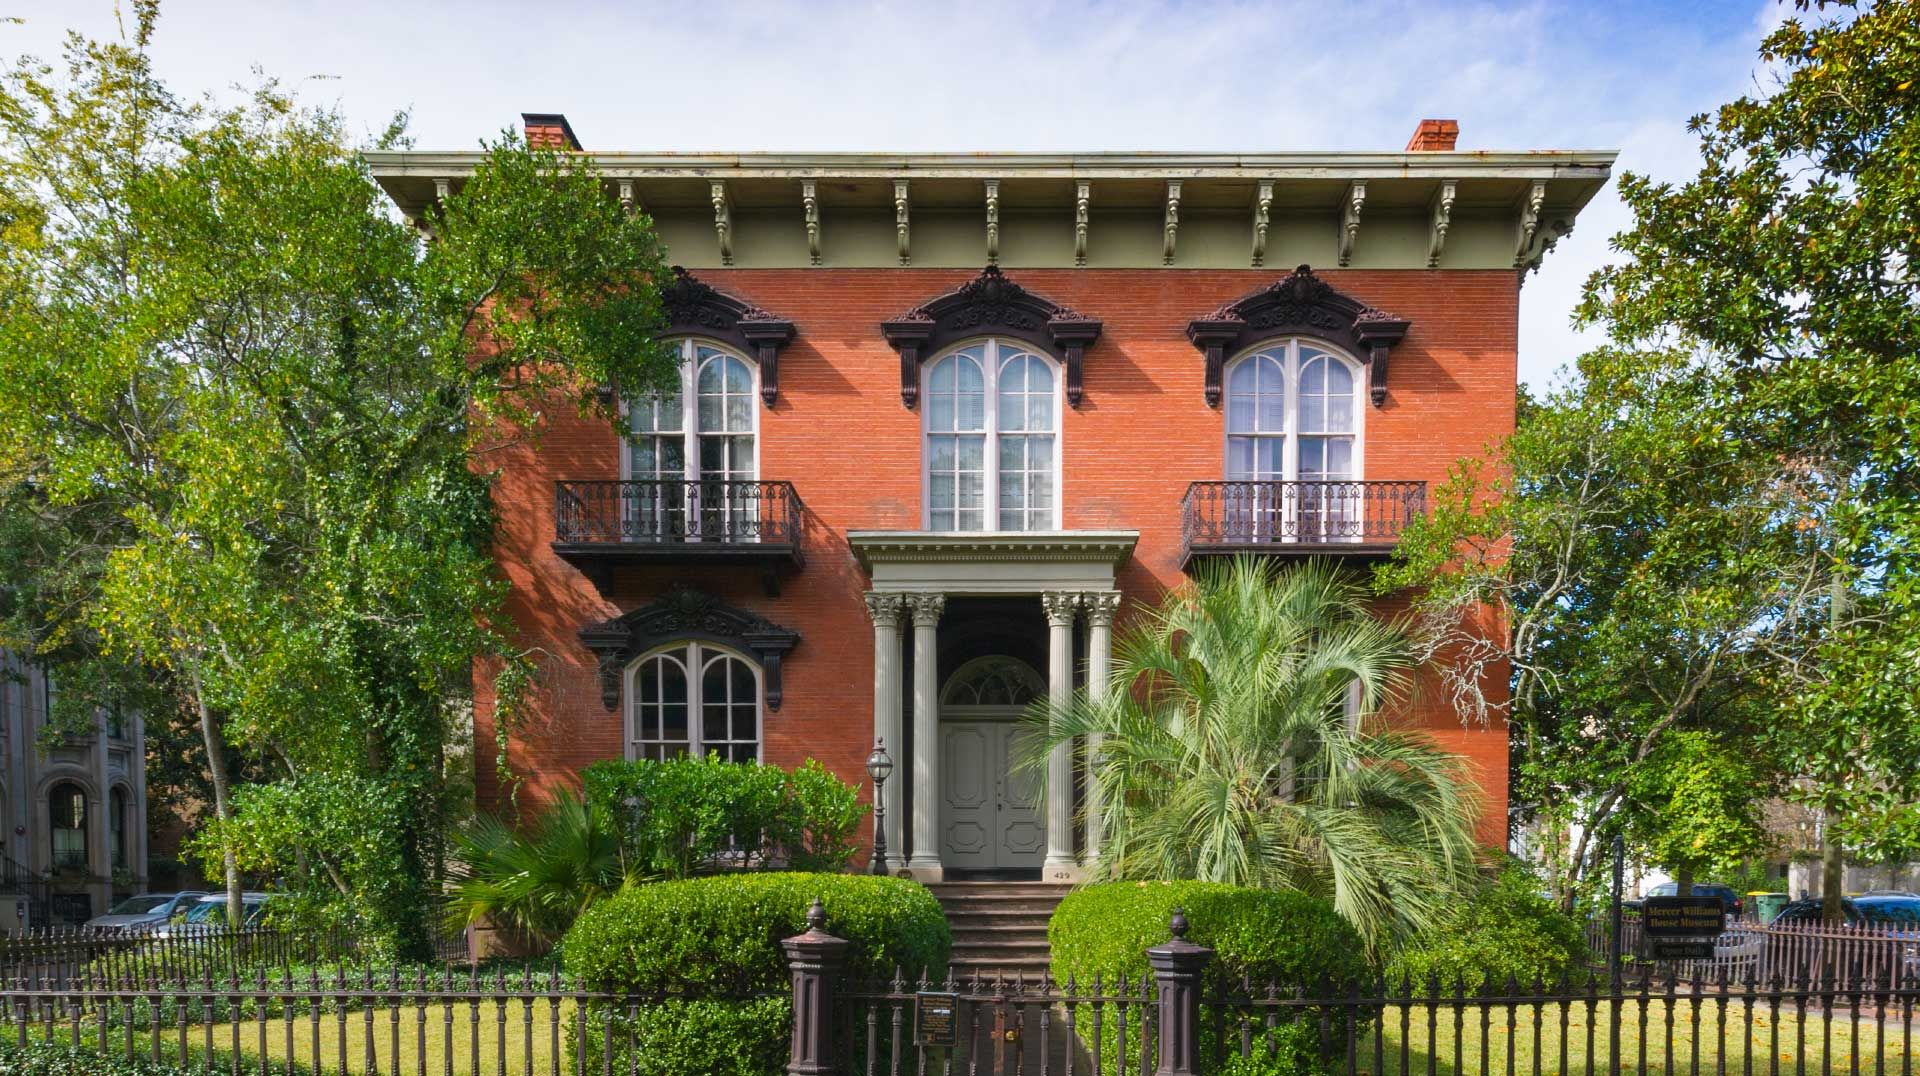 99 For A One Night Stay Valid For Sunday Thursday Check Ins At The River Street Inn In Savannah Ga Savannah Chat Savannah Historic District Historic Inns